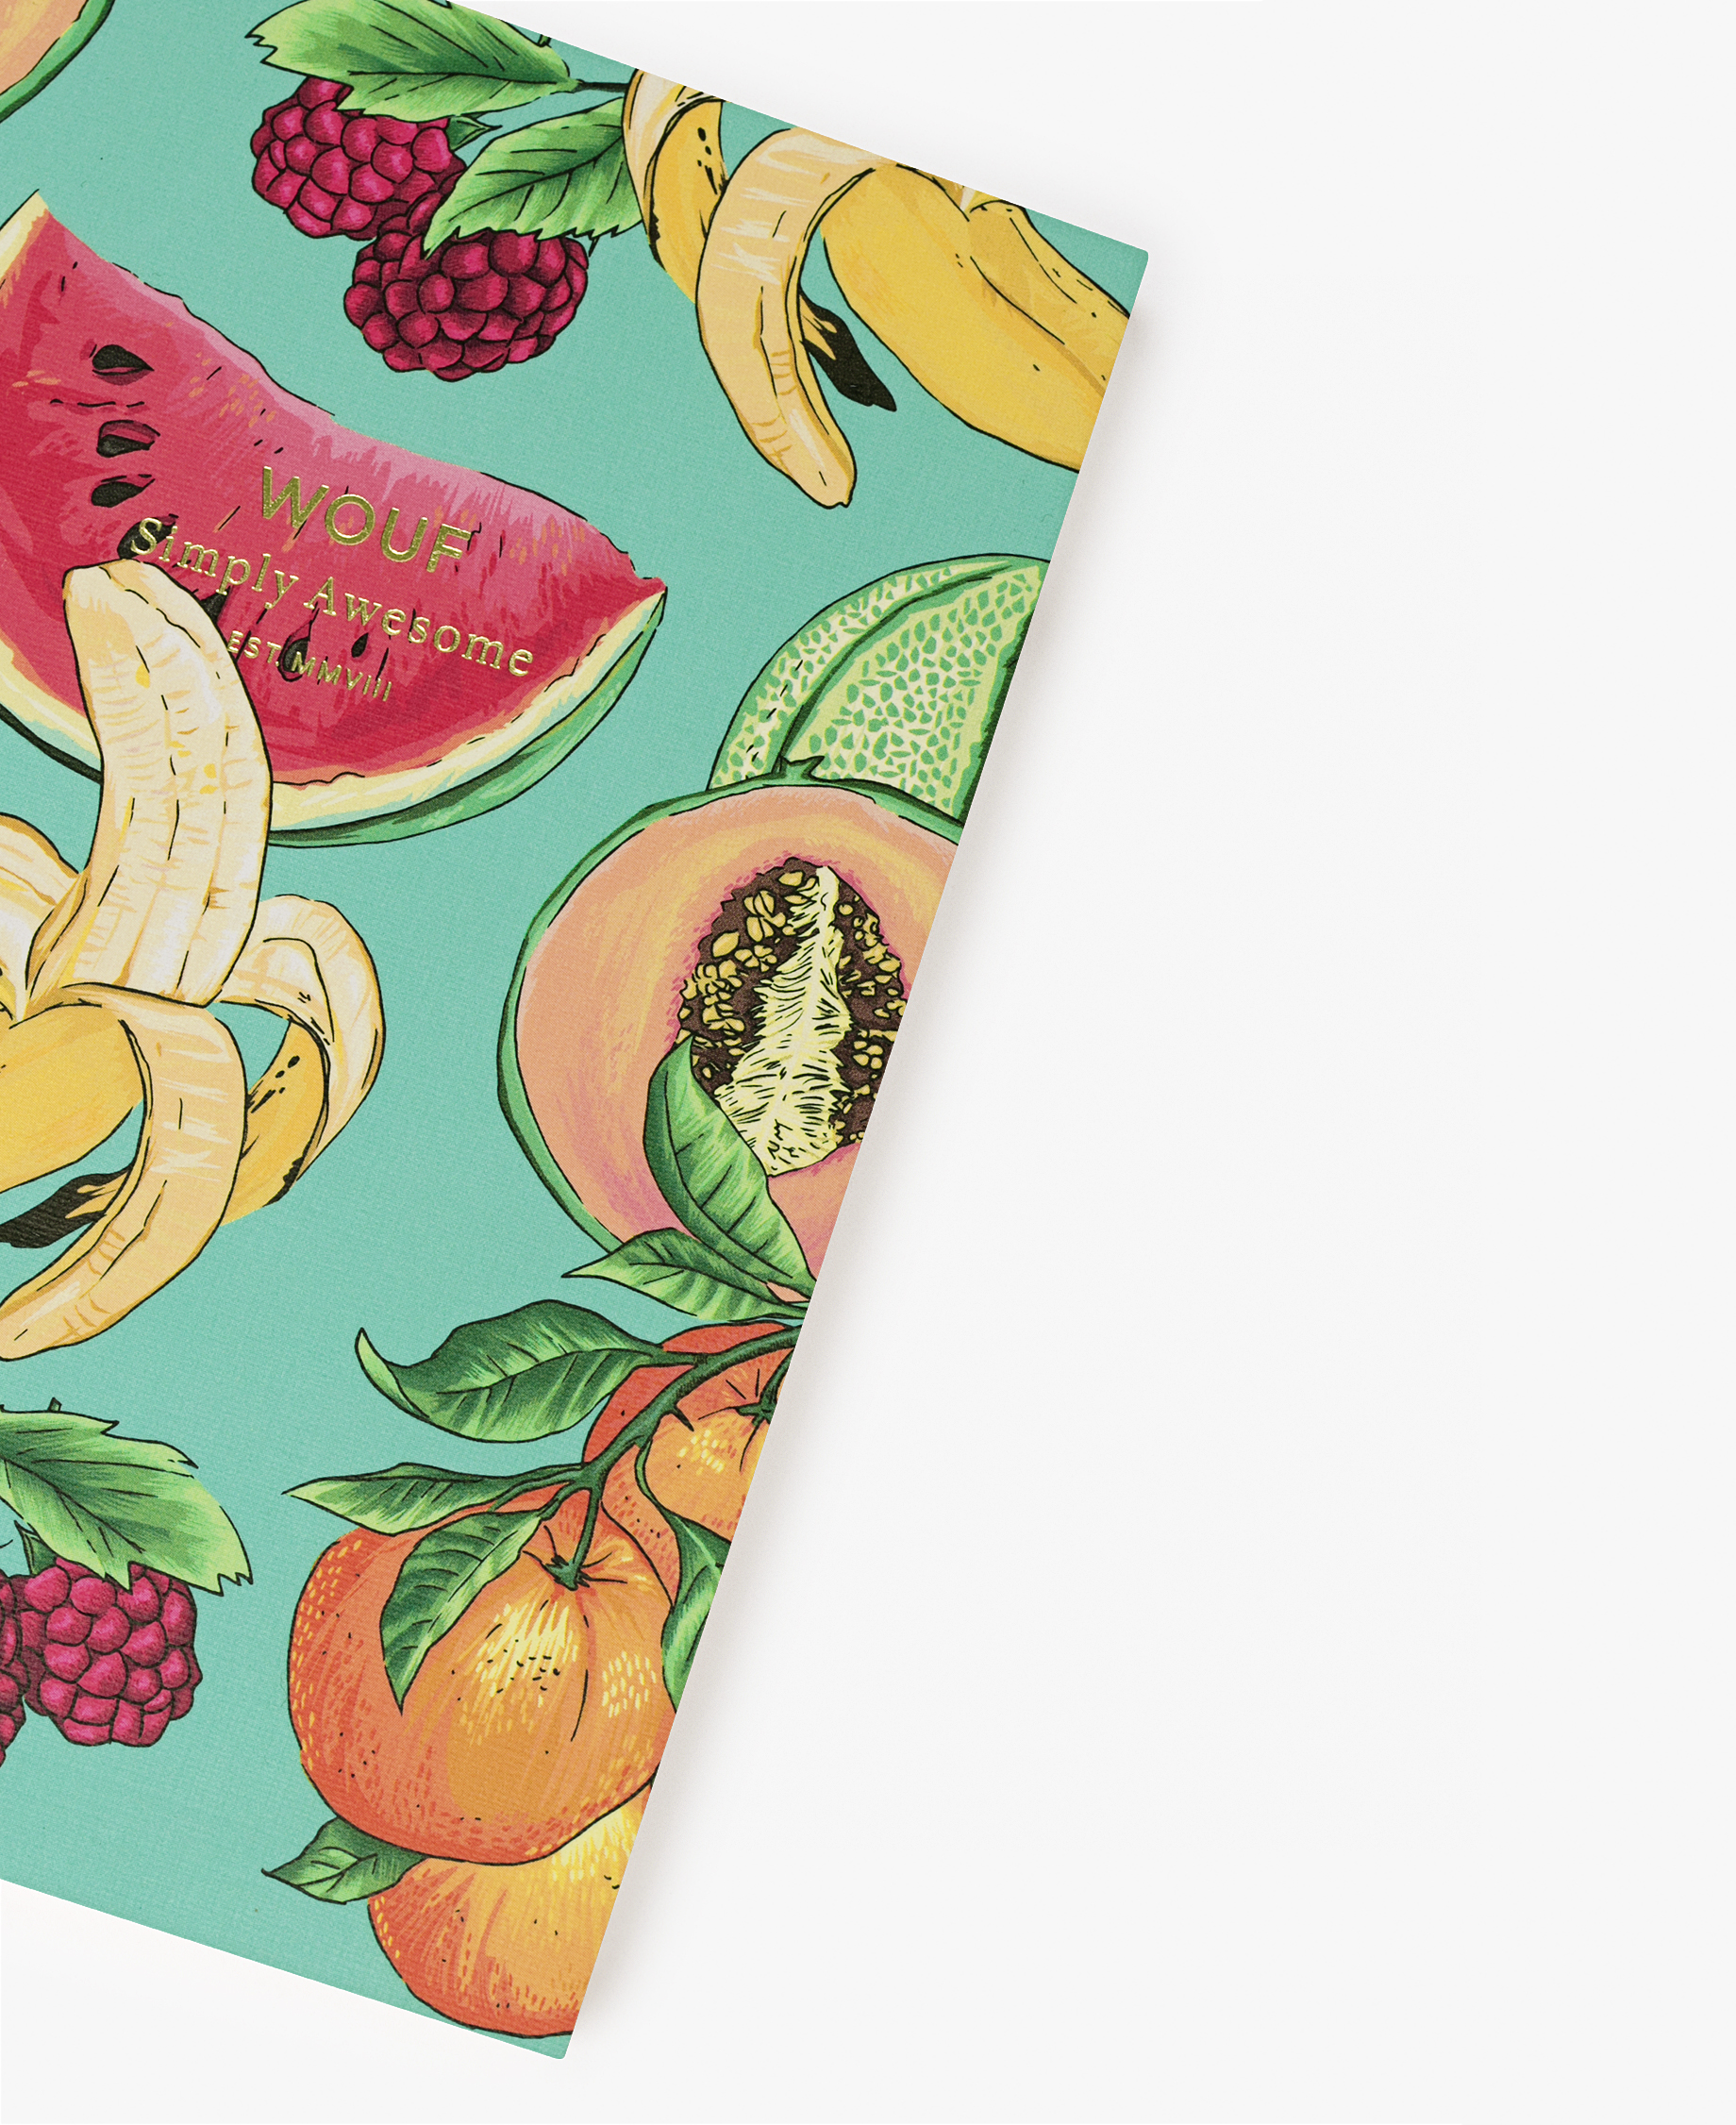 chic journal notebook with fruits